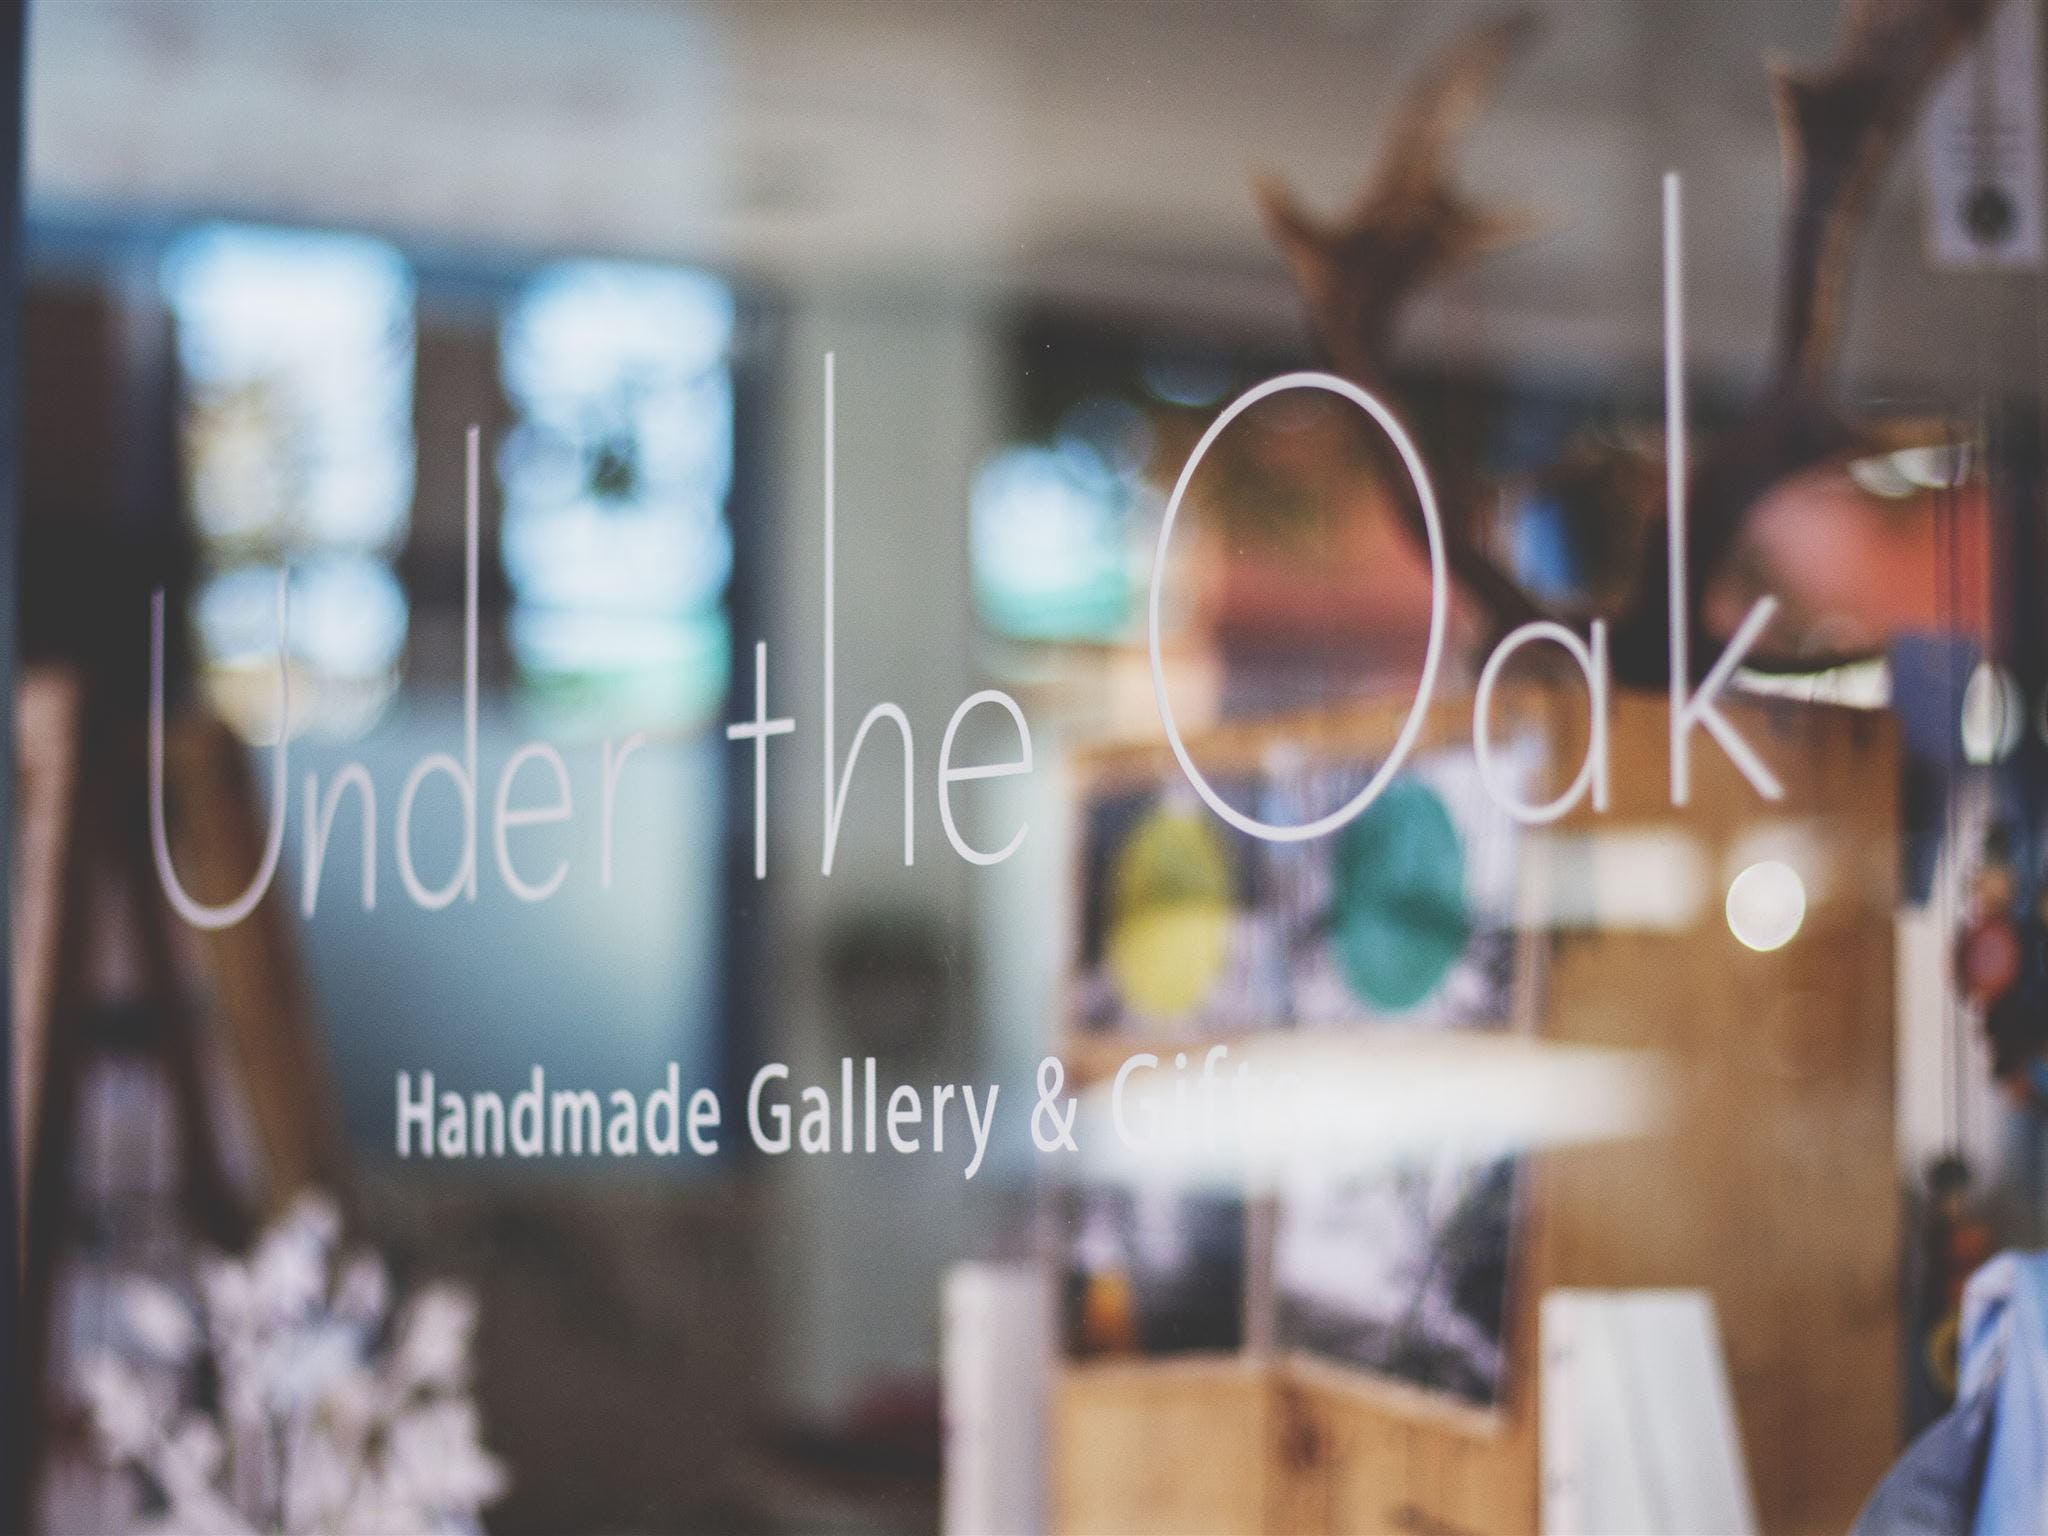 Under The Oak Handmade Gallery and Gifts - Accommodation Mermaid Beach